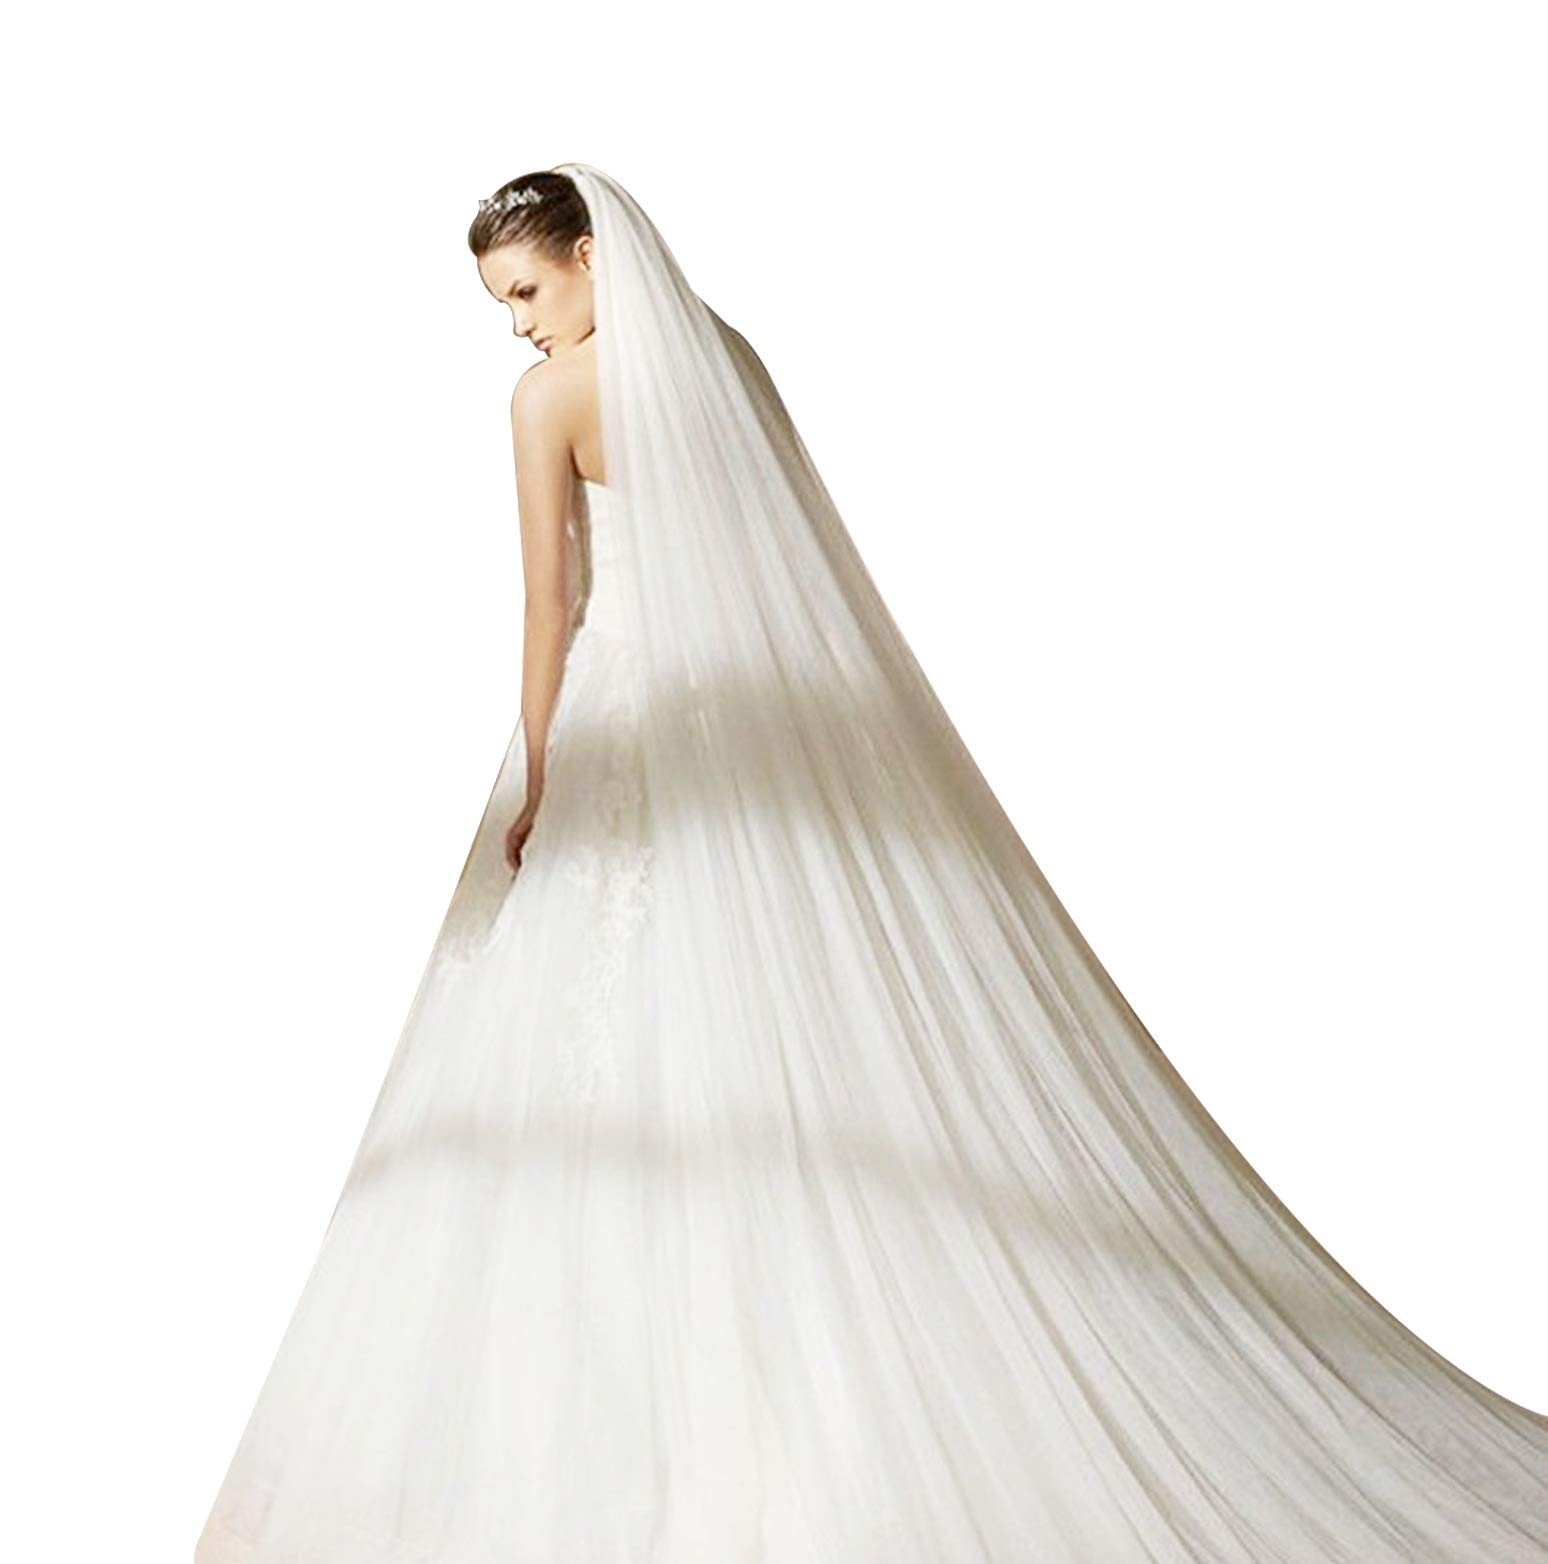 Bridal Wedding Veil 2T Trailing Long Cut Edge with mental Comb Ivory